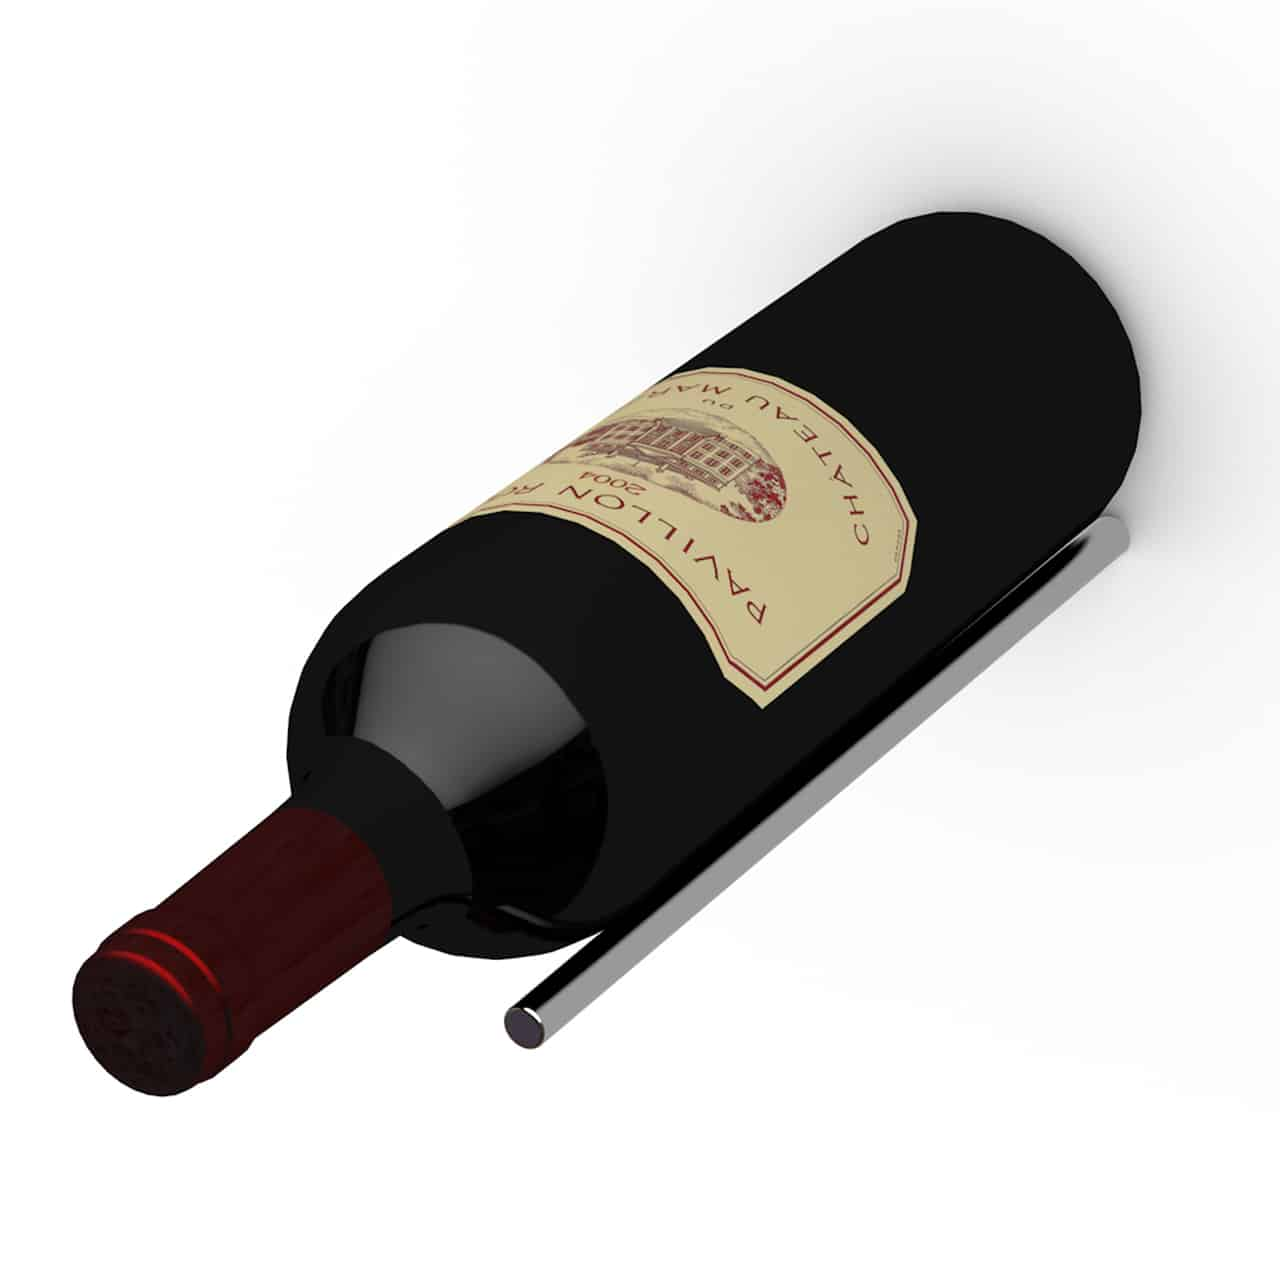 The Ultra Peg series hold the bottles with the neck out. At capacity, a Ultra Peg designed wine cellar gives the illusion that the bottles are actually floating.